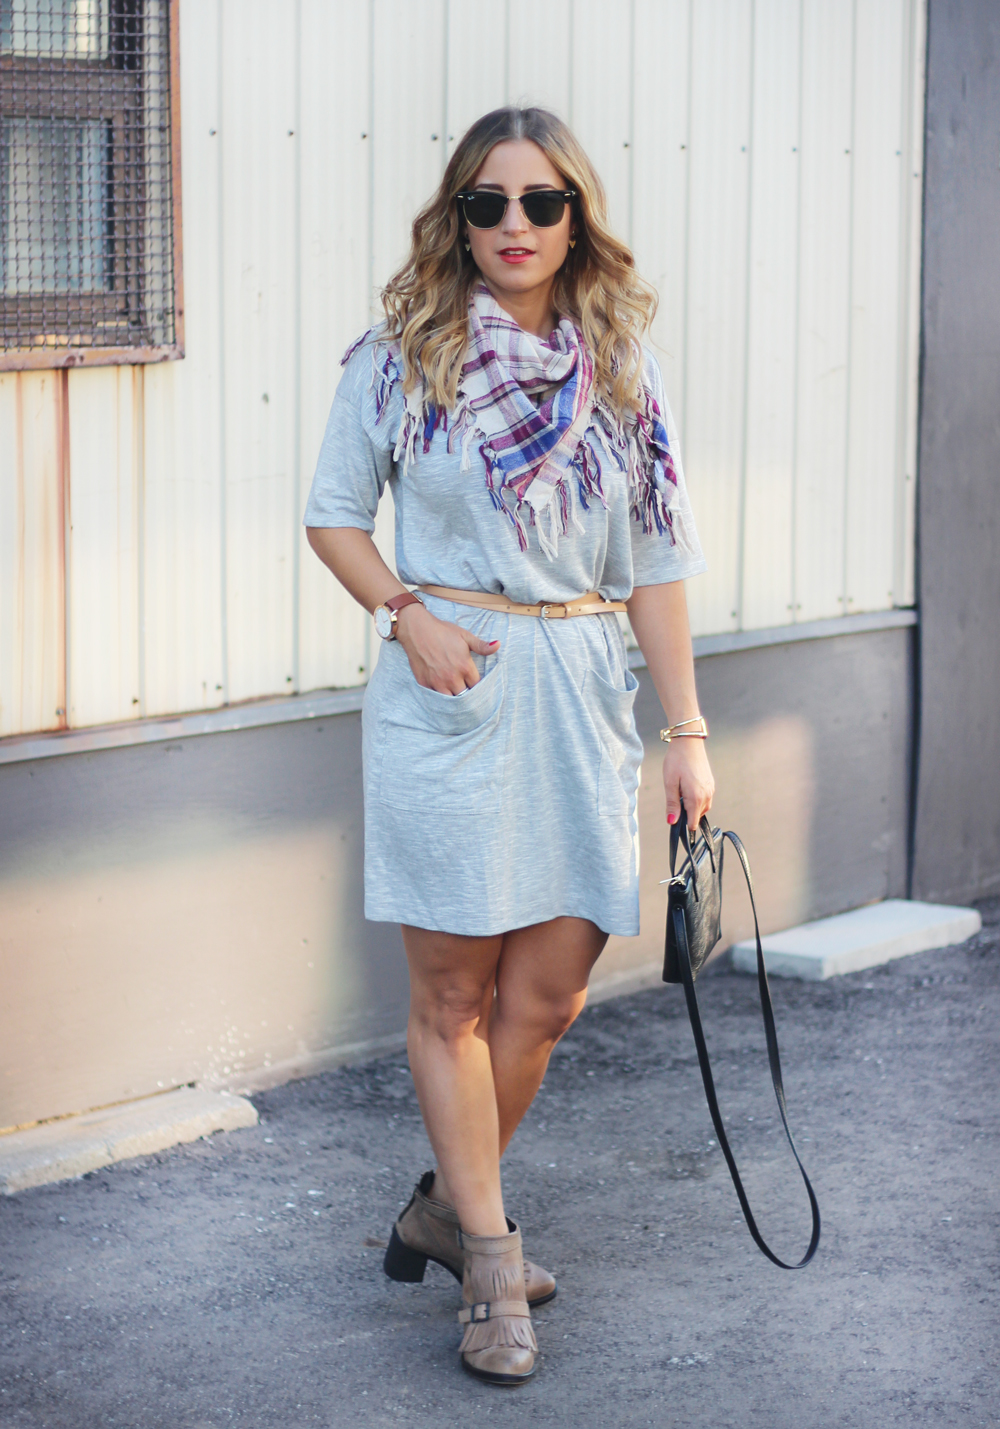 Bench t-shirt dress - transition to fall